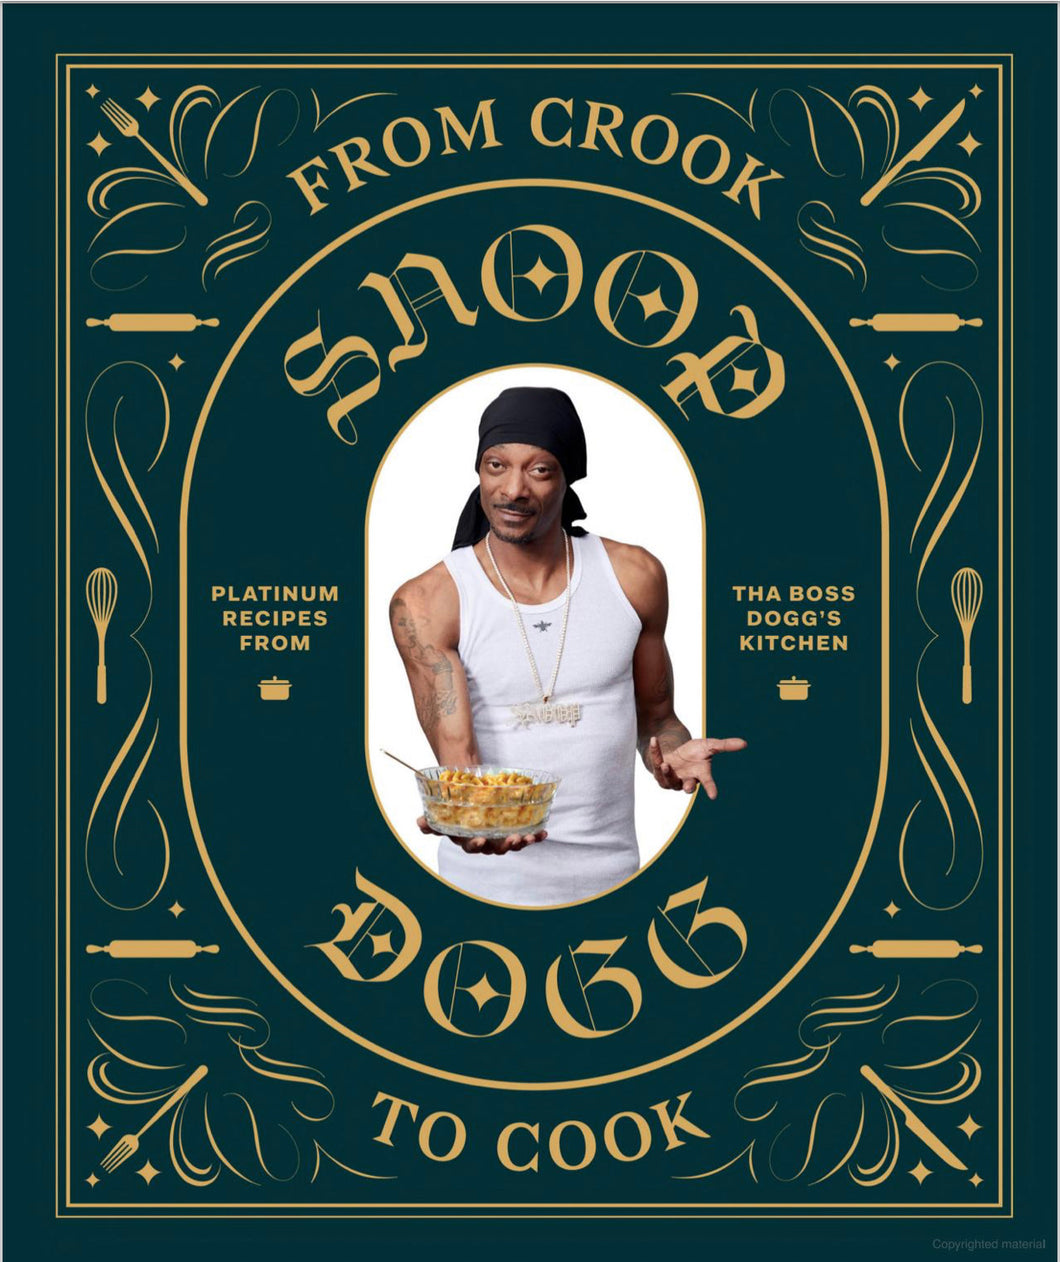 From Crook to Cook: Platinum Recipes from Tha Boss Dogg's Kitchen, Snoop Dogg - Indie Indie Bang! Bang!